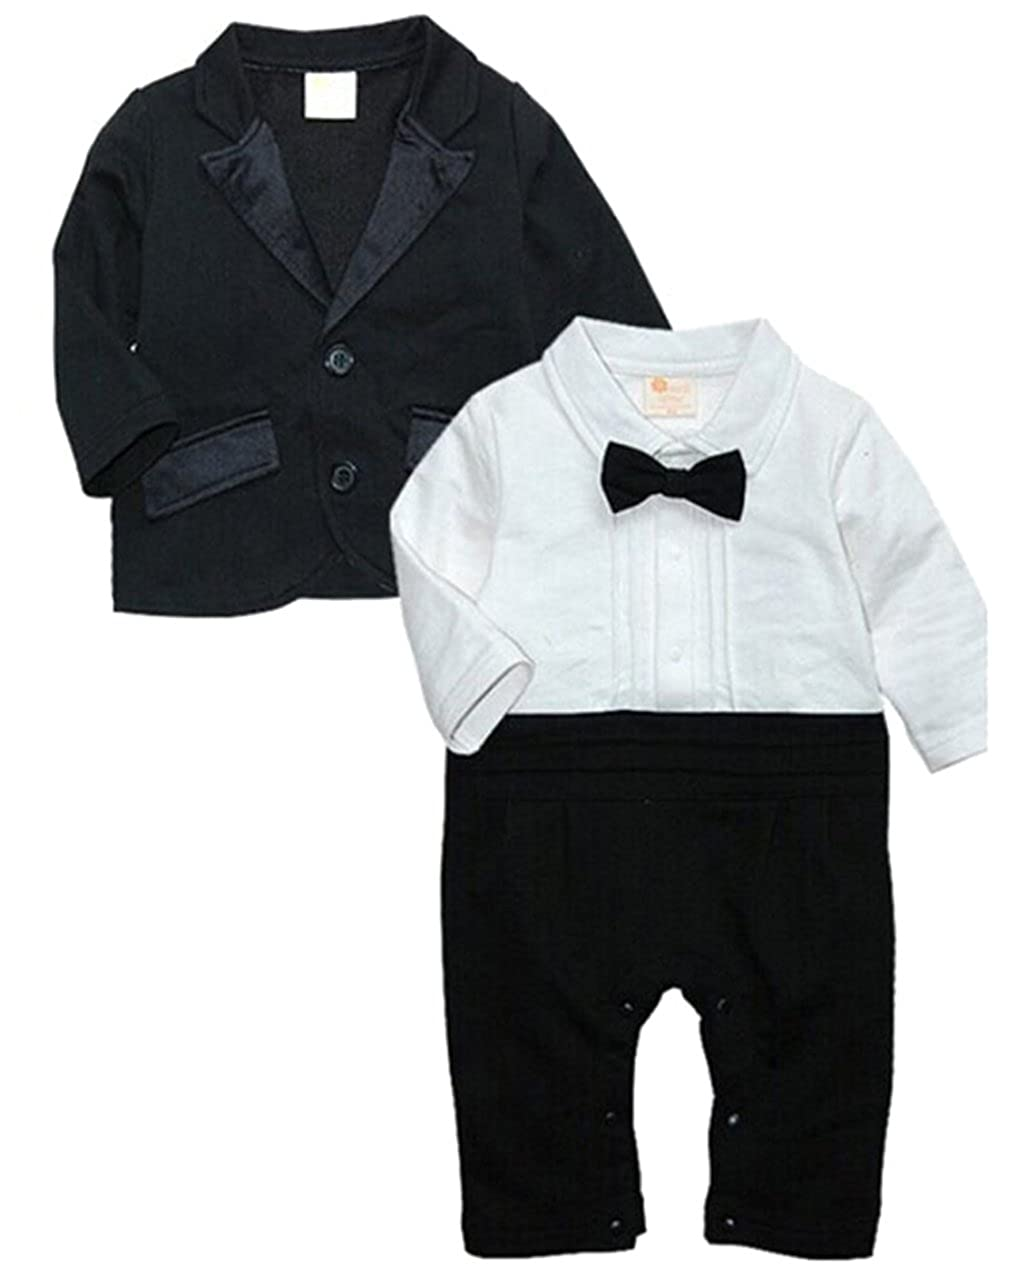 EGELEXY Baby Boys Tuxedo Wedding Romper and Jacket Formal Wear Suit